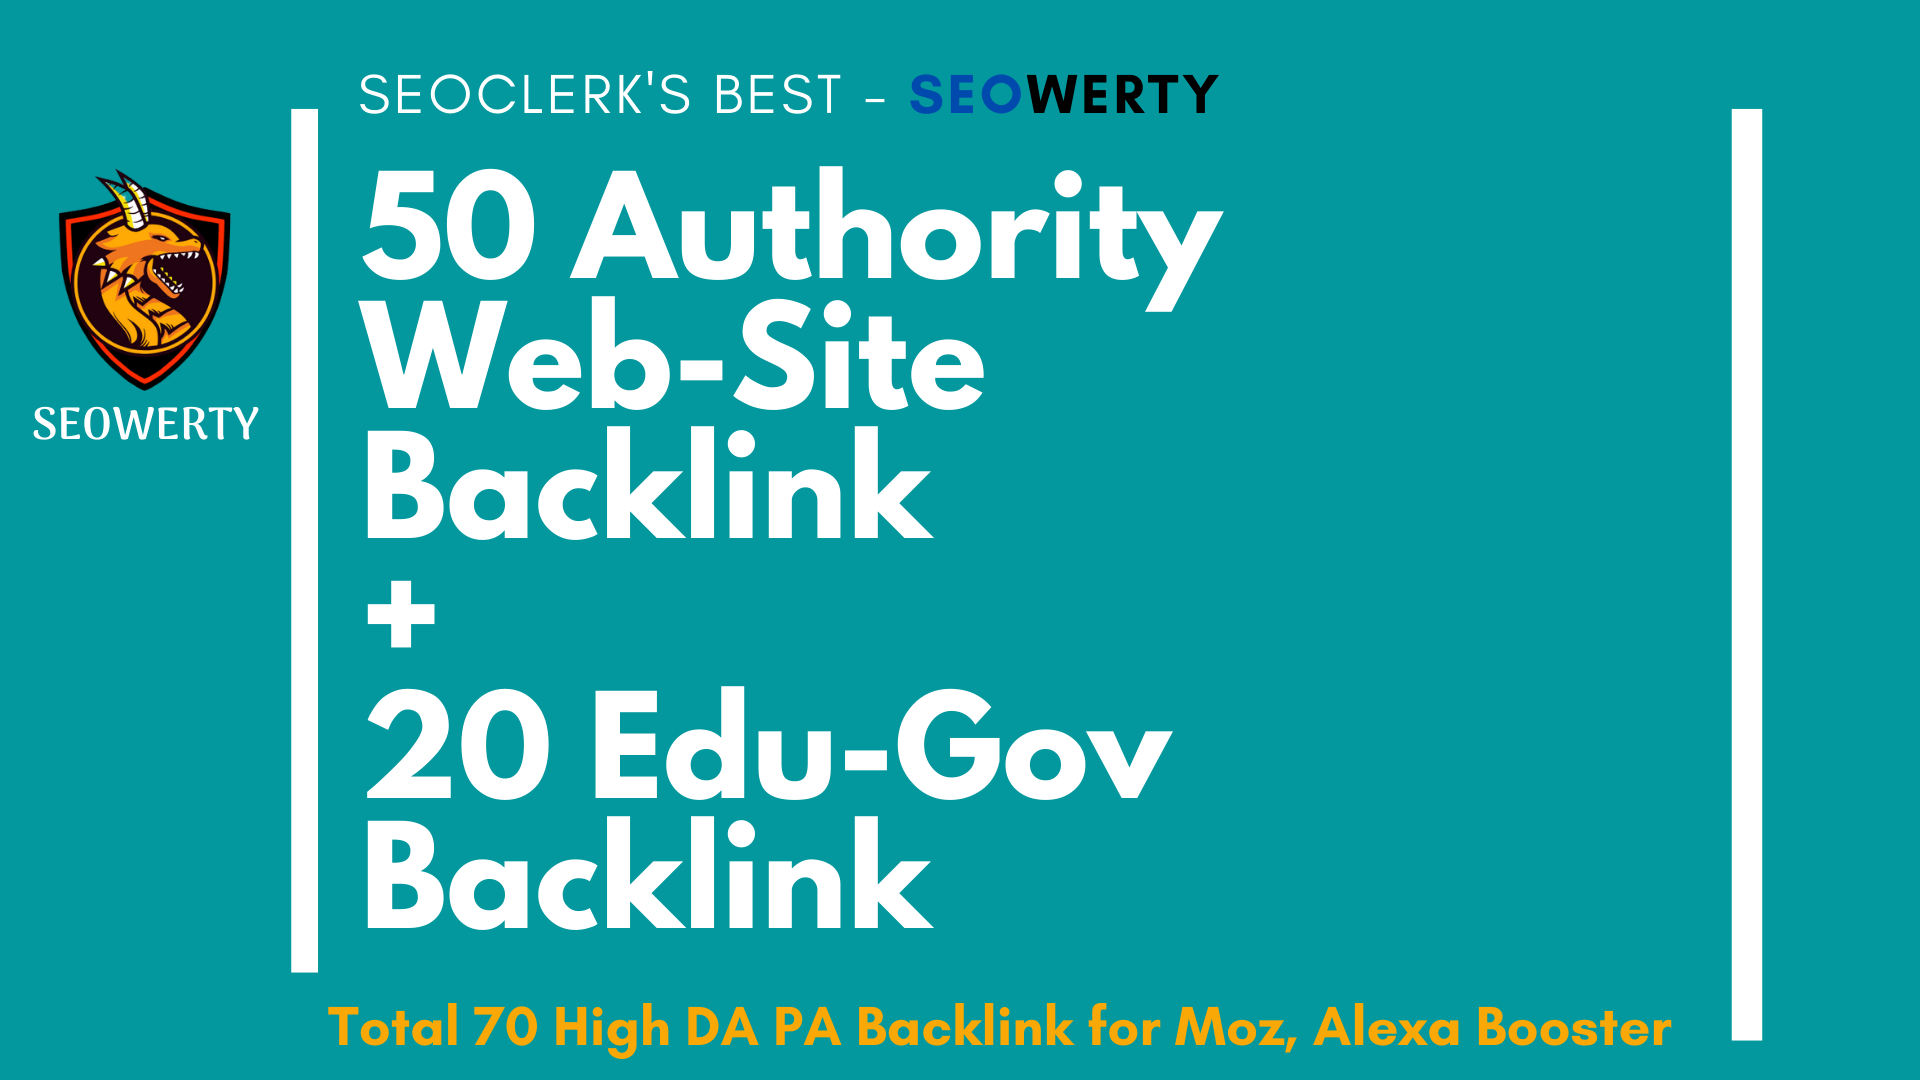 50 High Autority Backlink and 20 Edu & Gov Backlink